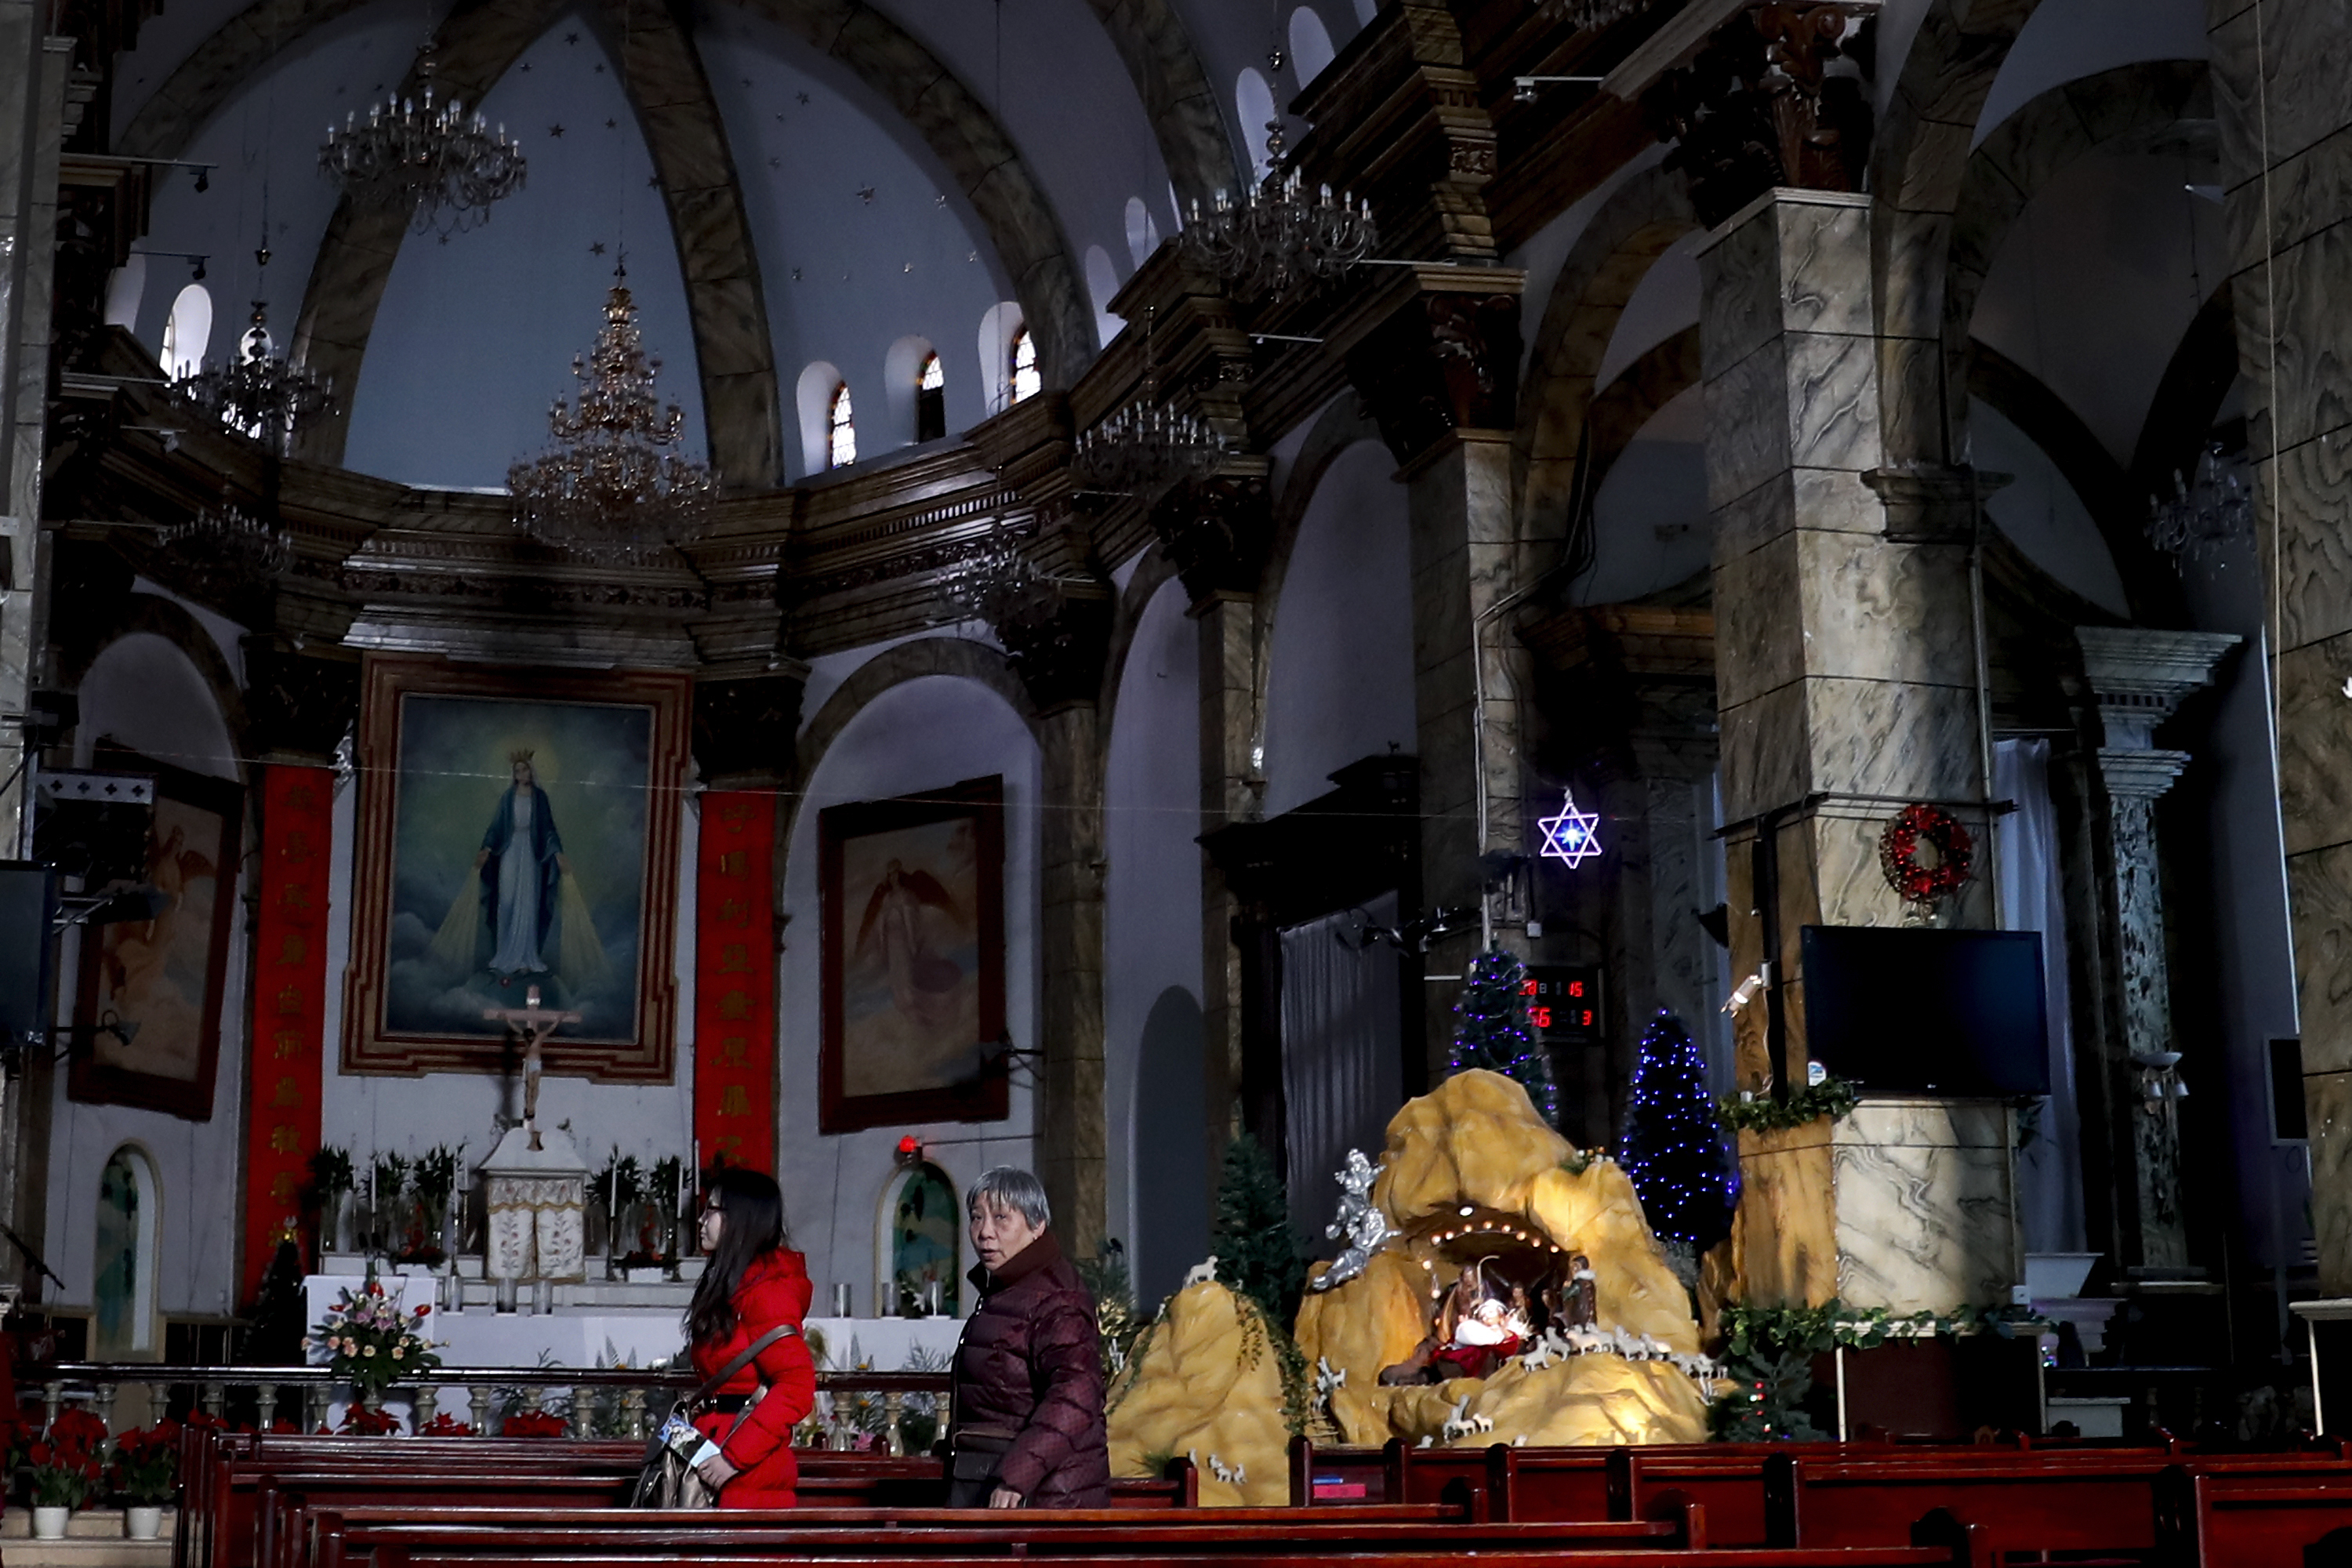 """In this Wednesday photo, Chinese women walk past a decoration displaying a Baby Jesus doll part of a Nativity scene, at the Nantang Catholic Church in Beijing. One of China's top leaders told Chinese Catholics that they need to operate """"independently"""" of outside forces and promote socialism and patriotism through religion. AP WIREPHOTO"""